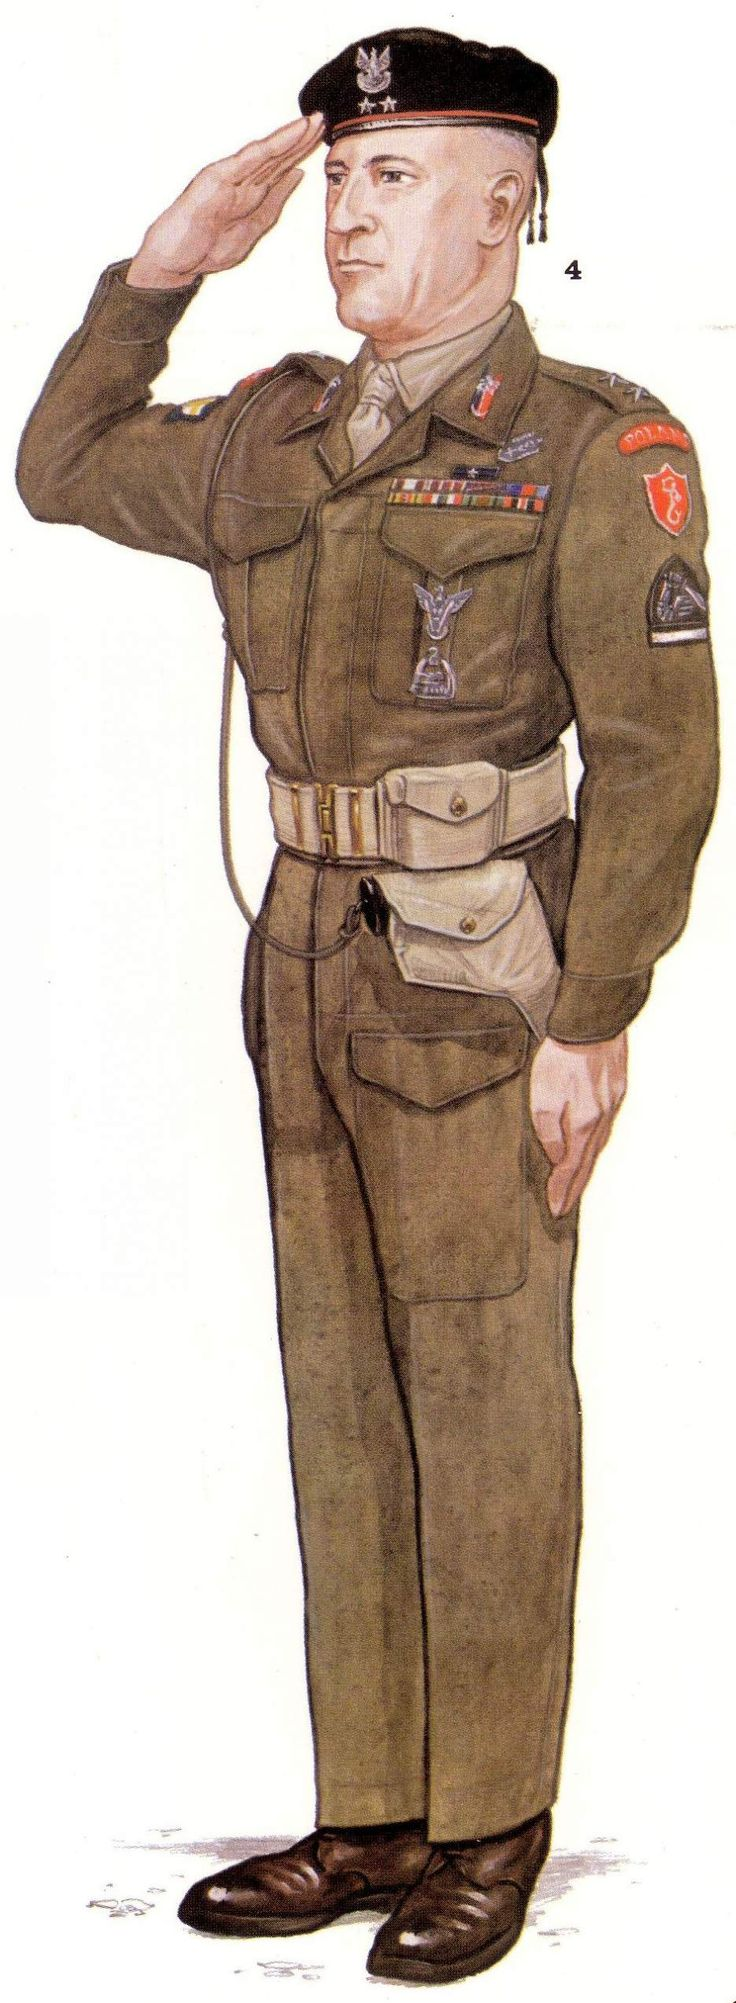 polish carpathian lancers battledress - officer, Italy summer 1946 - pin by Paolo Marzioli